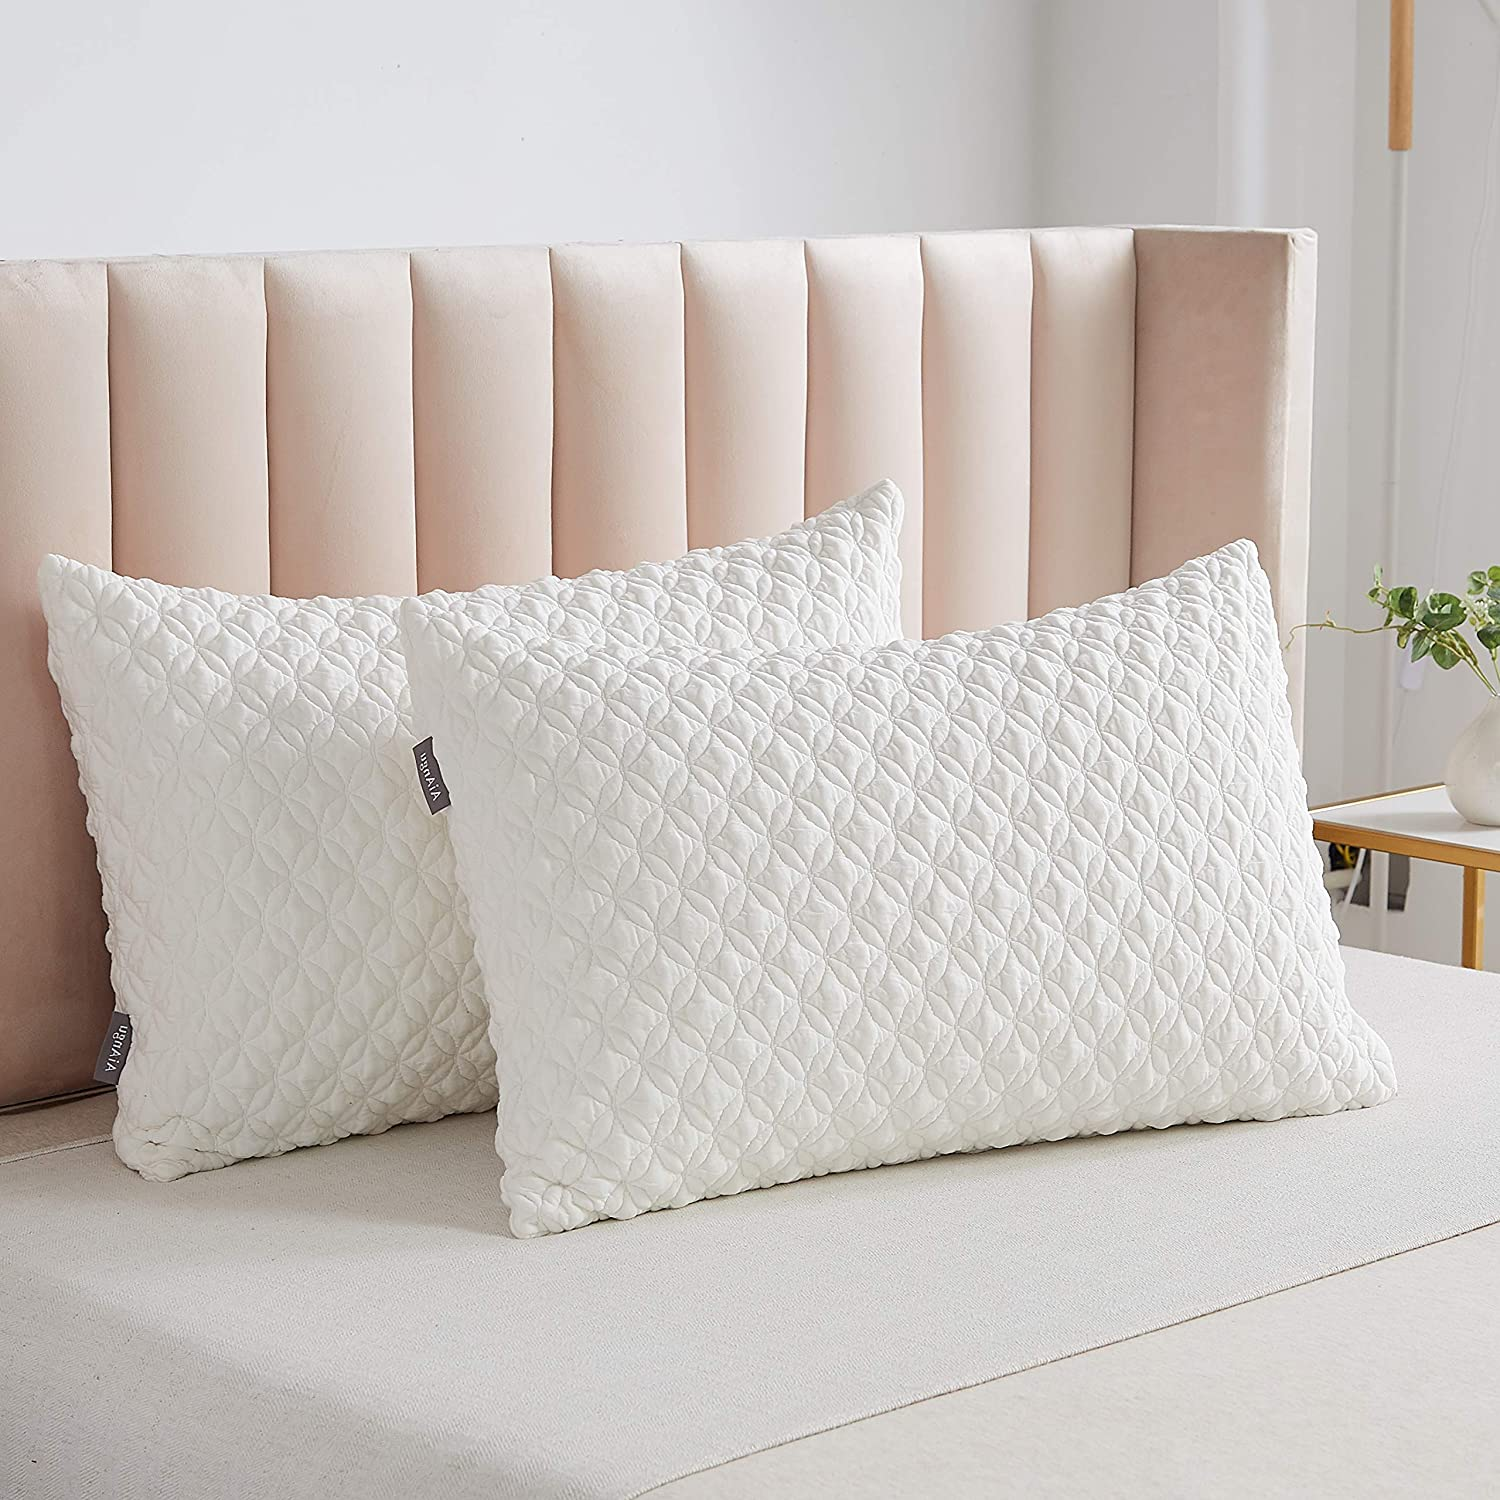 SONORO KATE Foam Pillow for Sleeping Shredded Bed Bamboo Cooling Pillow with Adjustable Loft 3D Design Hypoallergenic Washable Removable Derived Rayon Zip Cover (White(Soft), King)